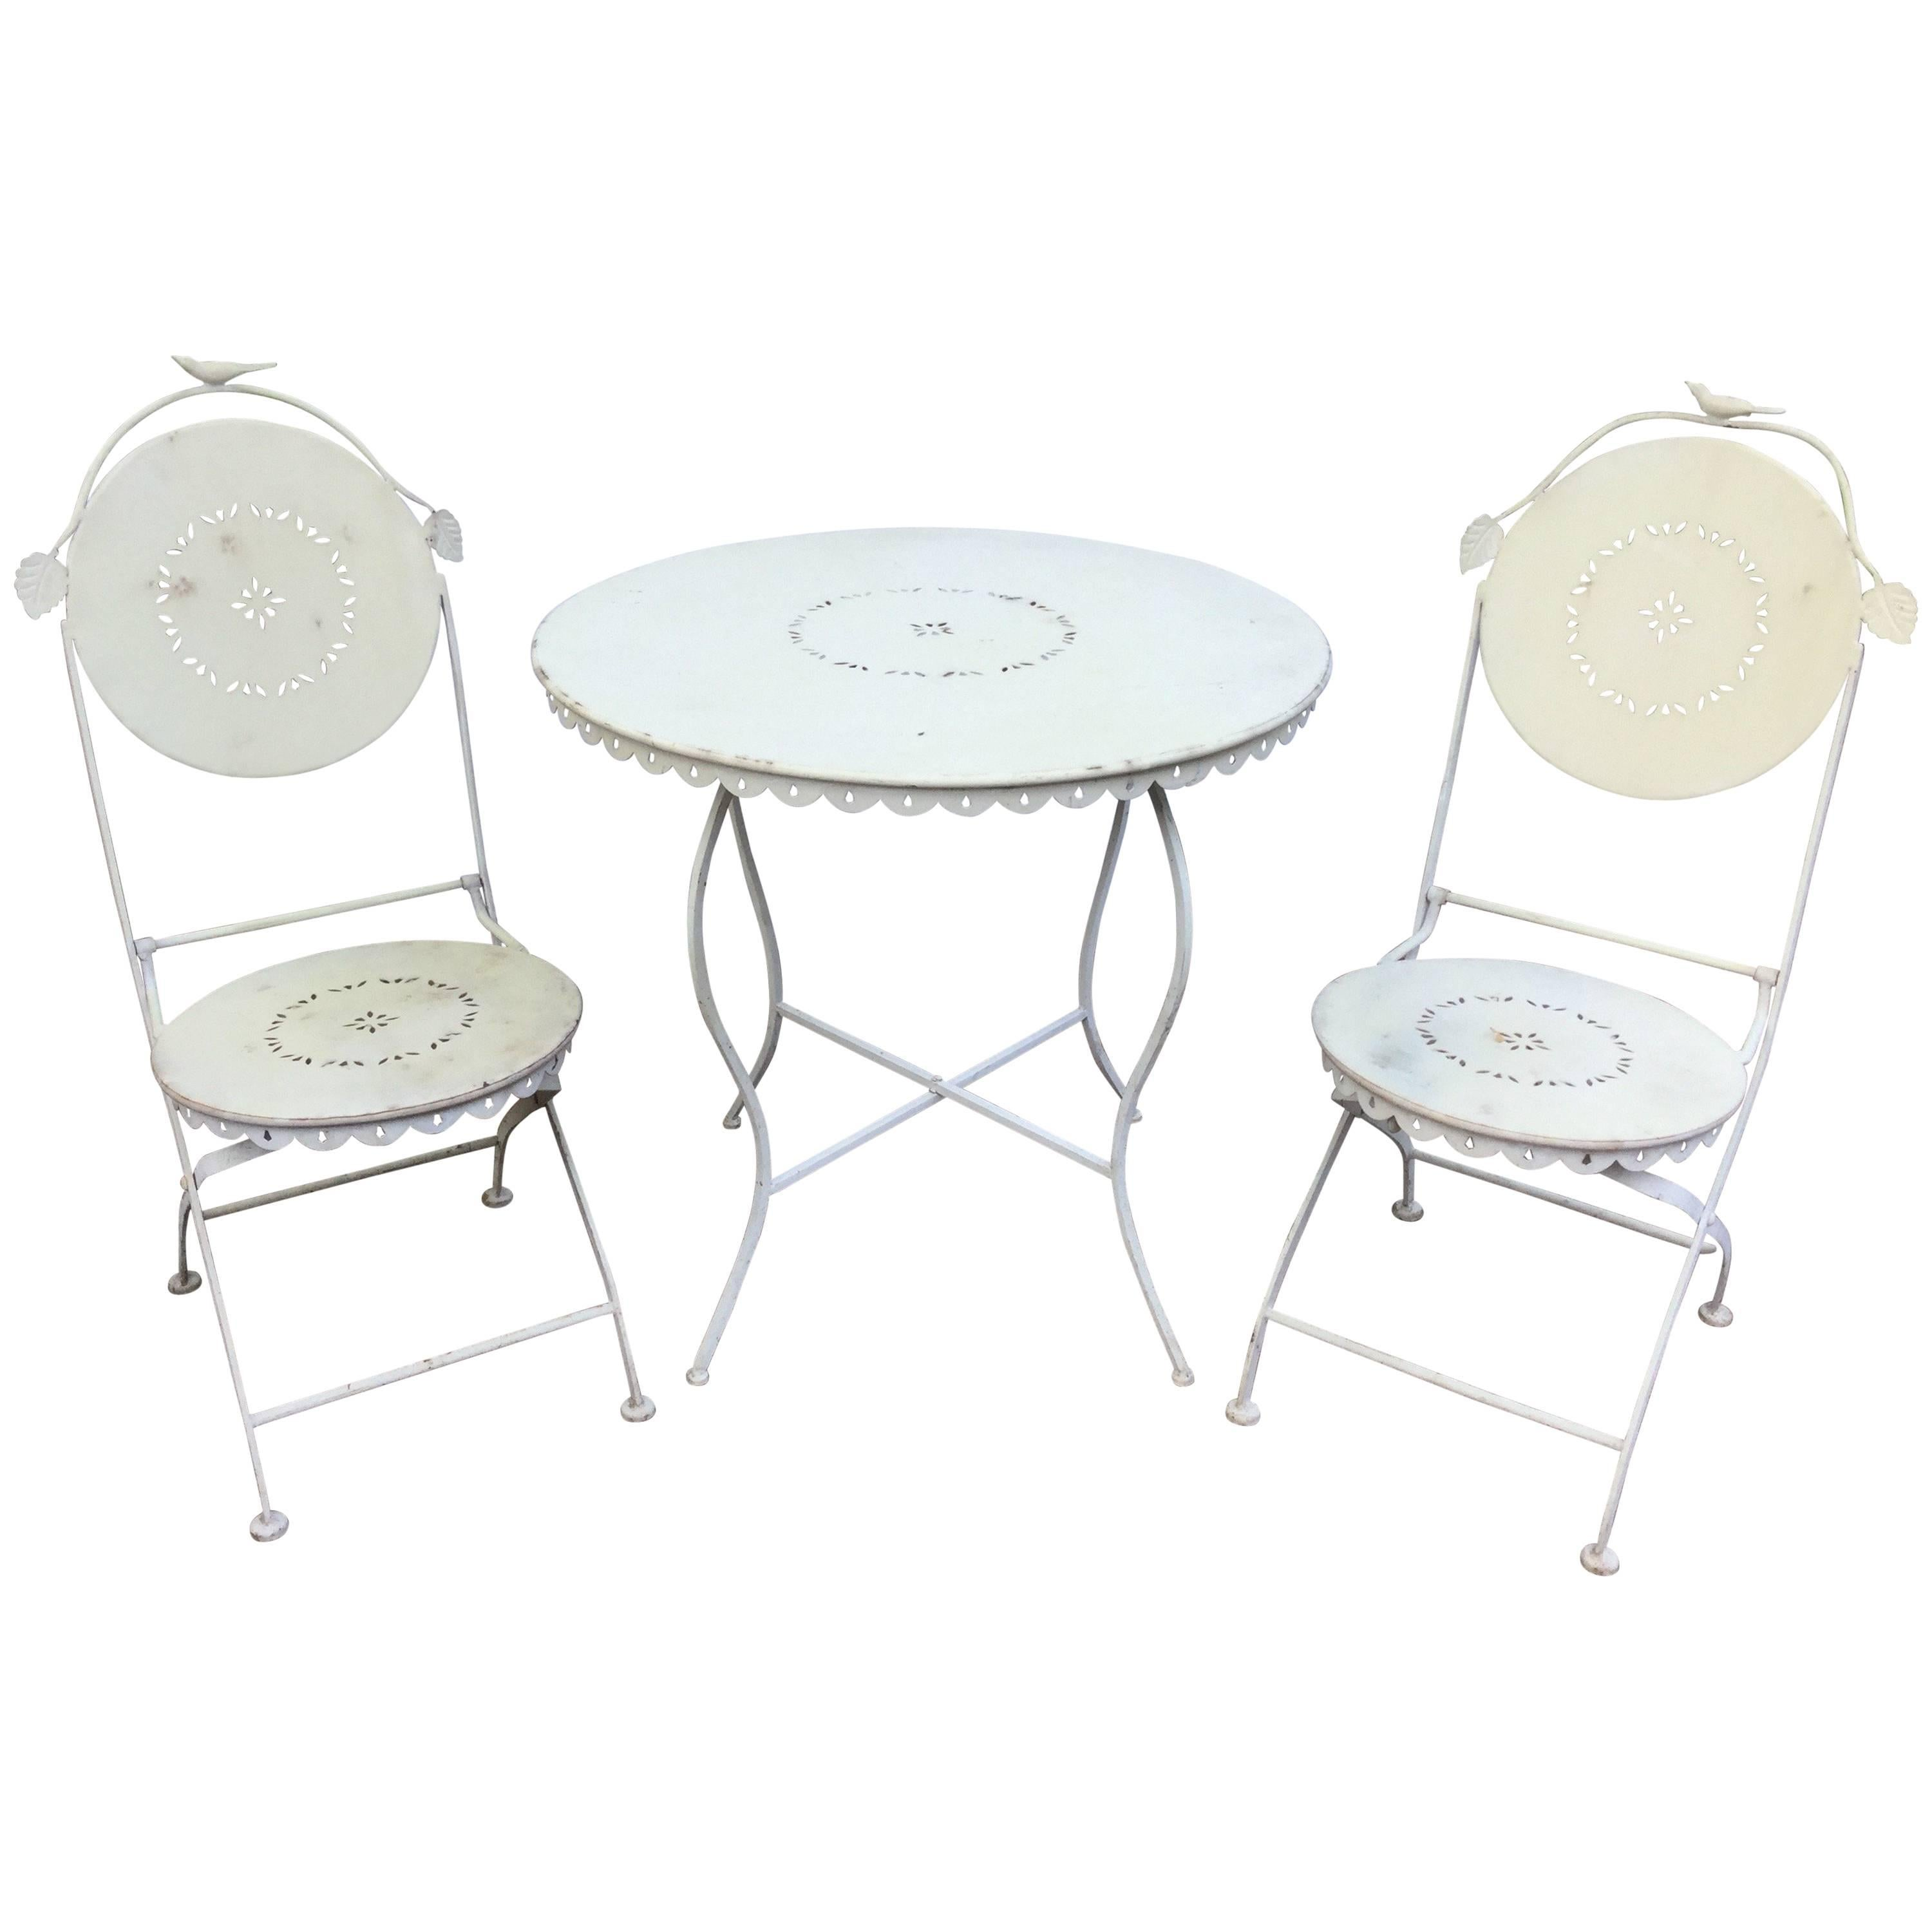 Darling vintage outdoor bistro table and chairs for sale at 1stdibs